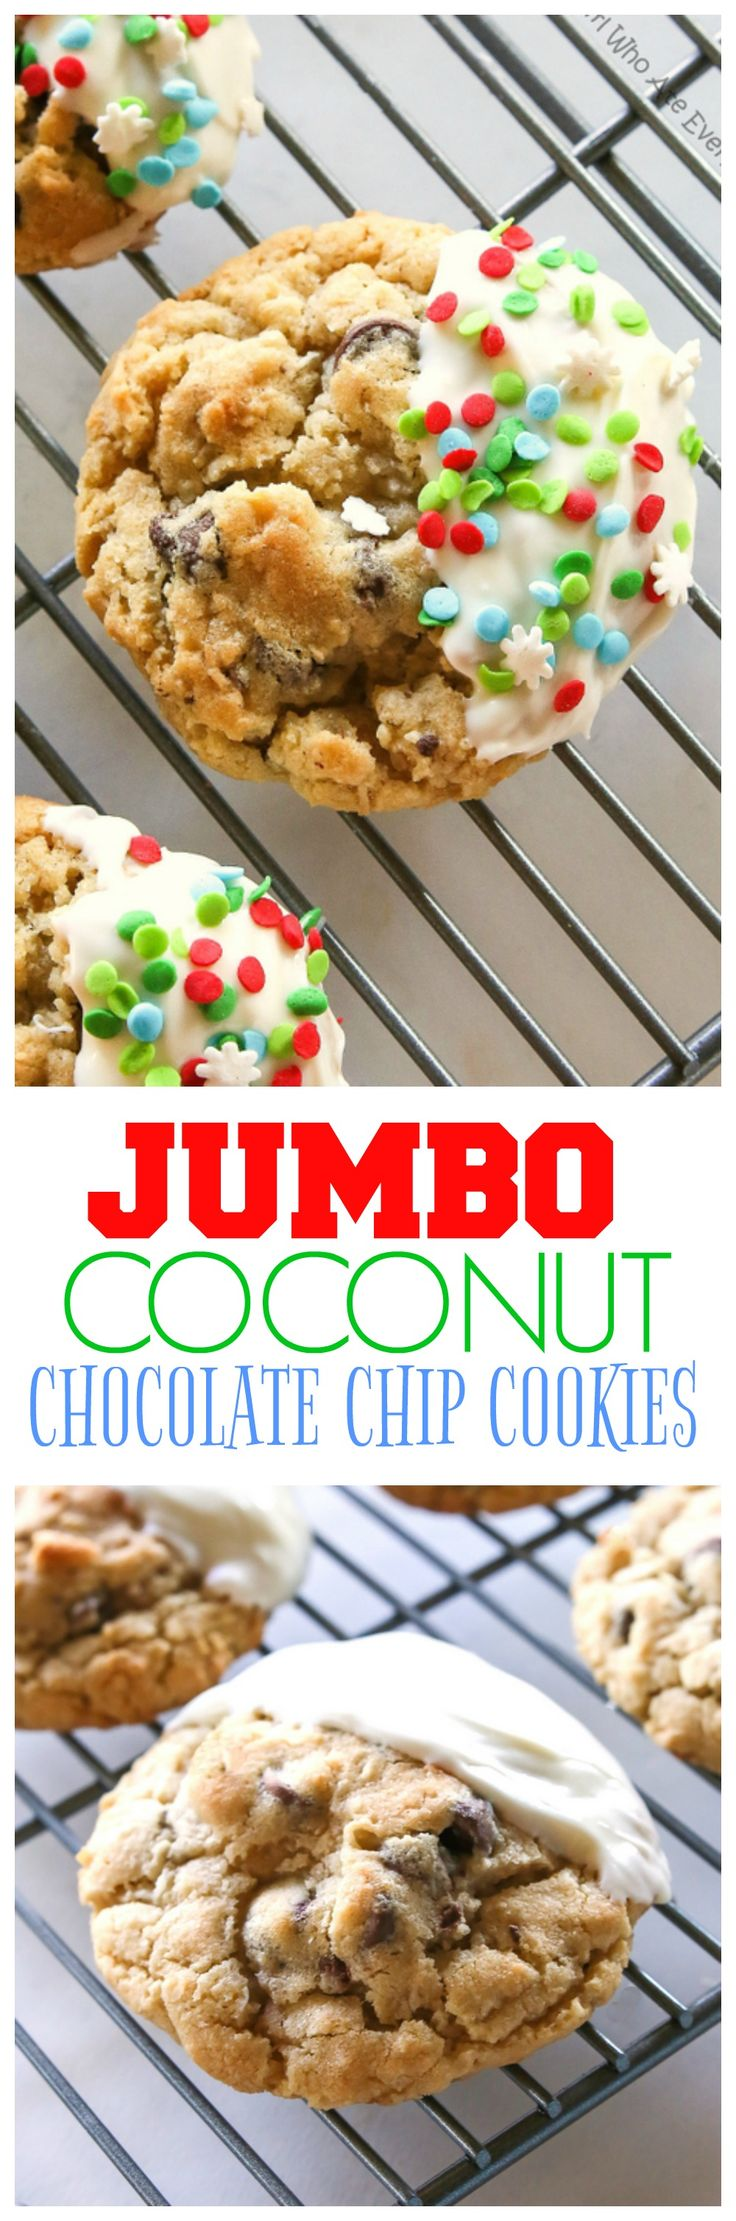 Jumbo Chocolate Chip Cookies - These bakery style cookies are full of chocolate chips and coconut. They have a crisp outside with a soft and chewy inside.